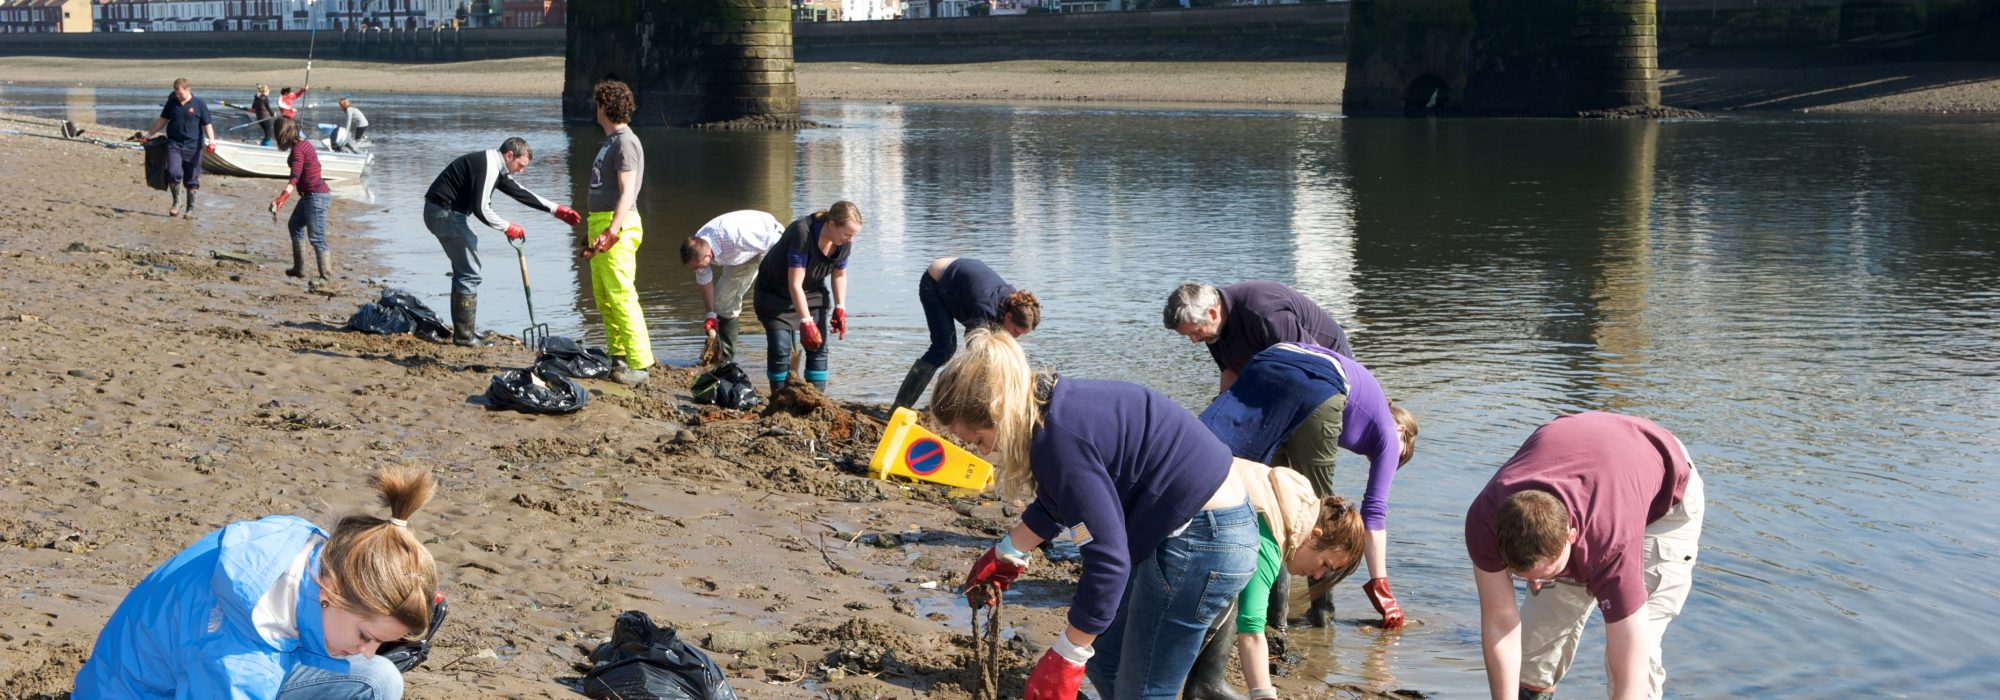 Support our work to improve London's waterways